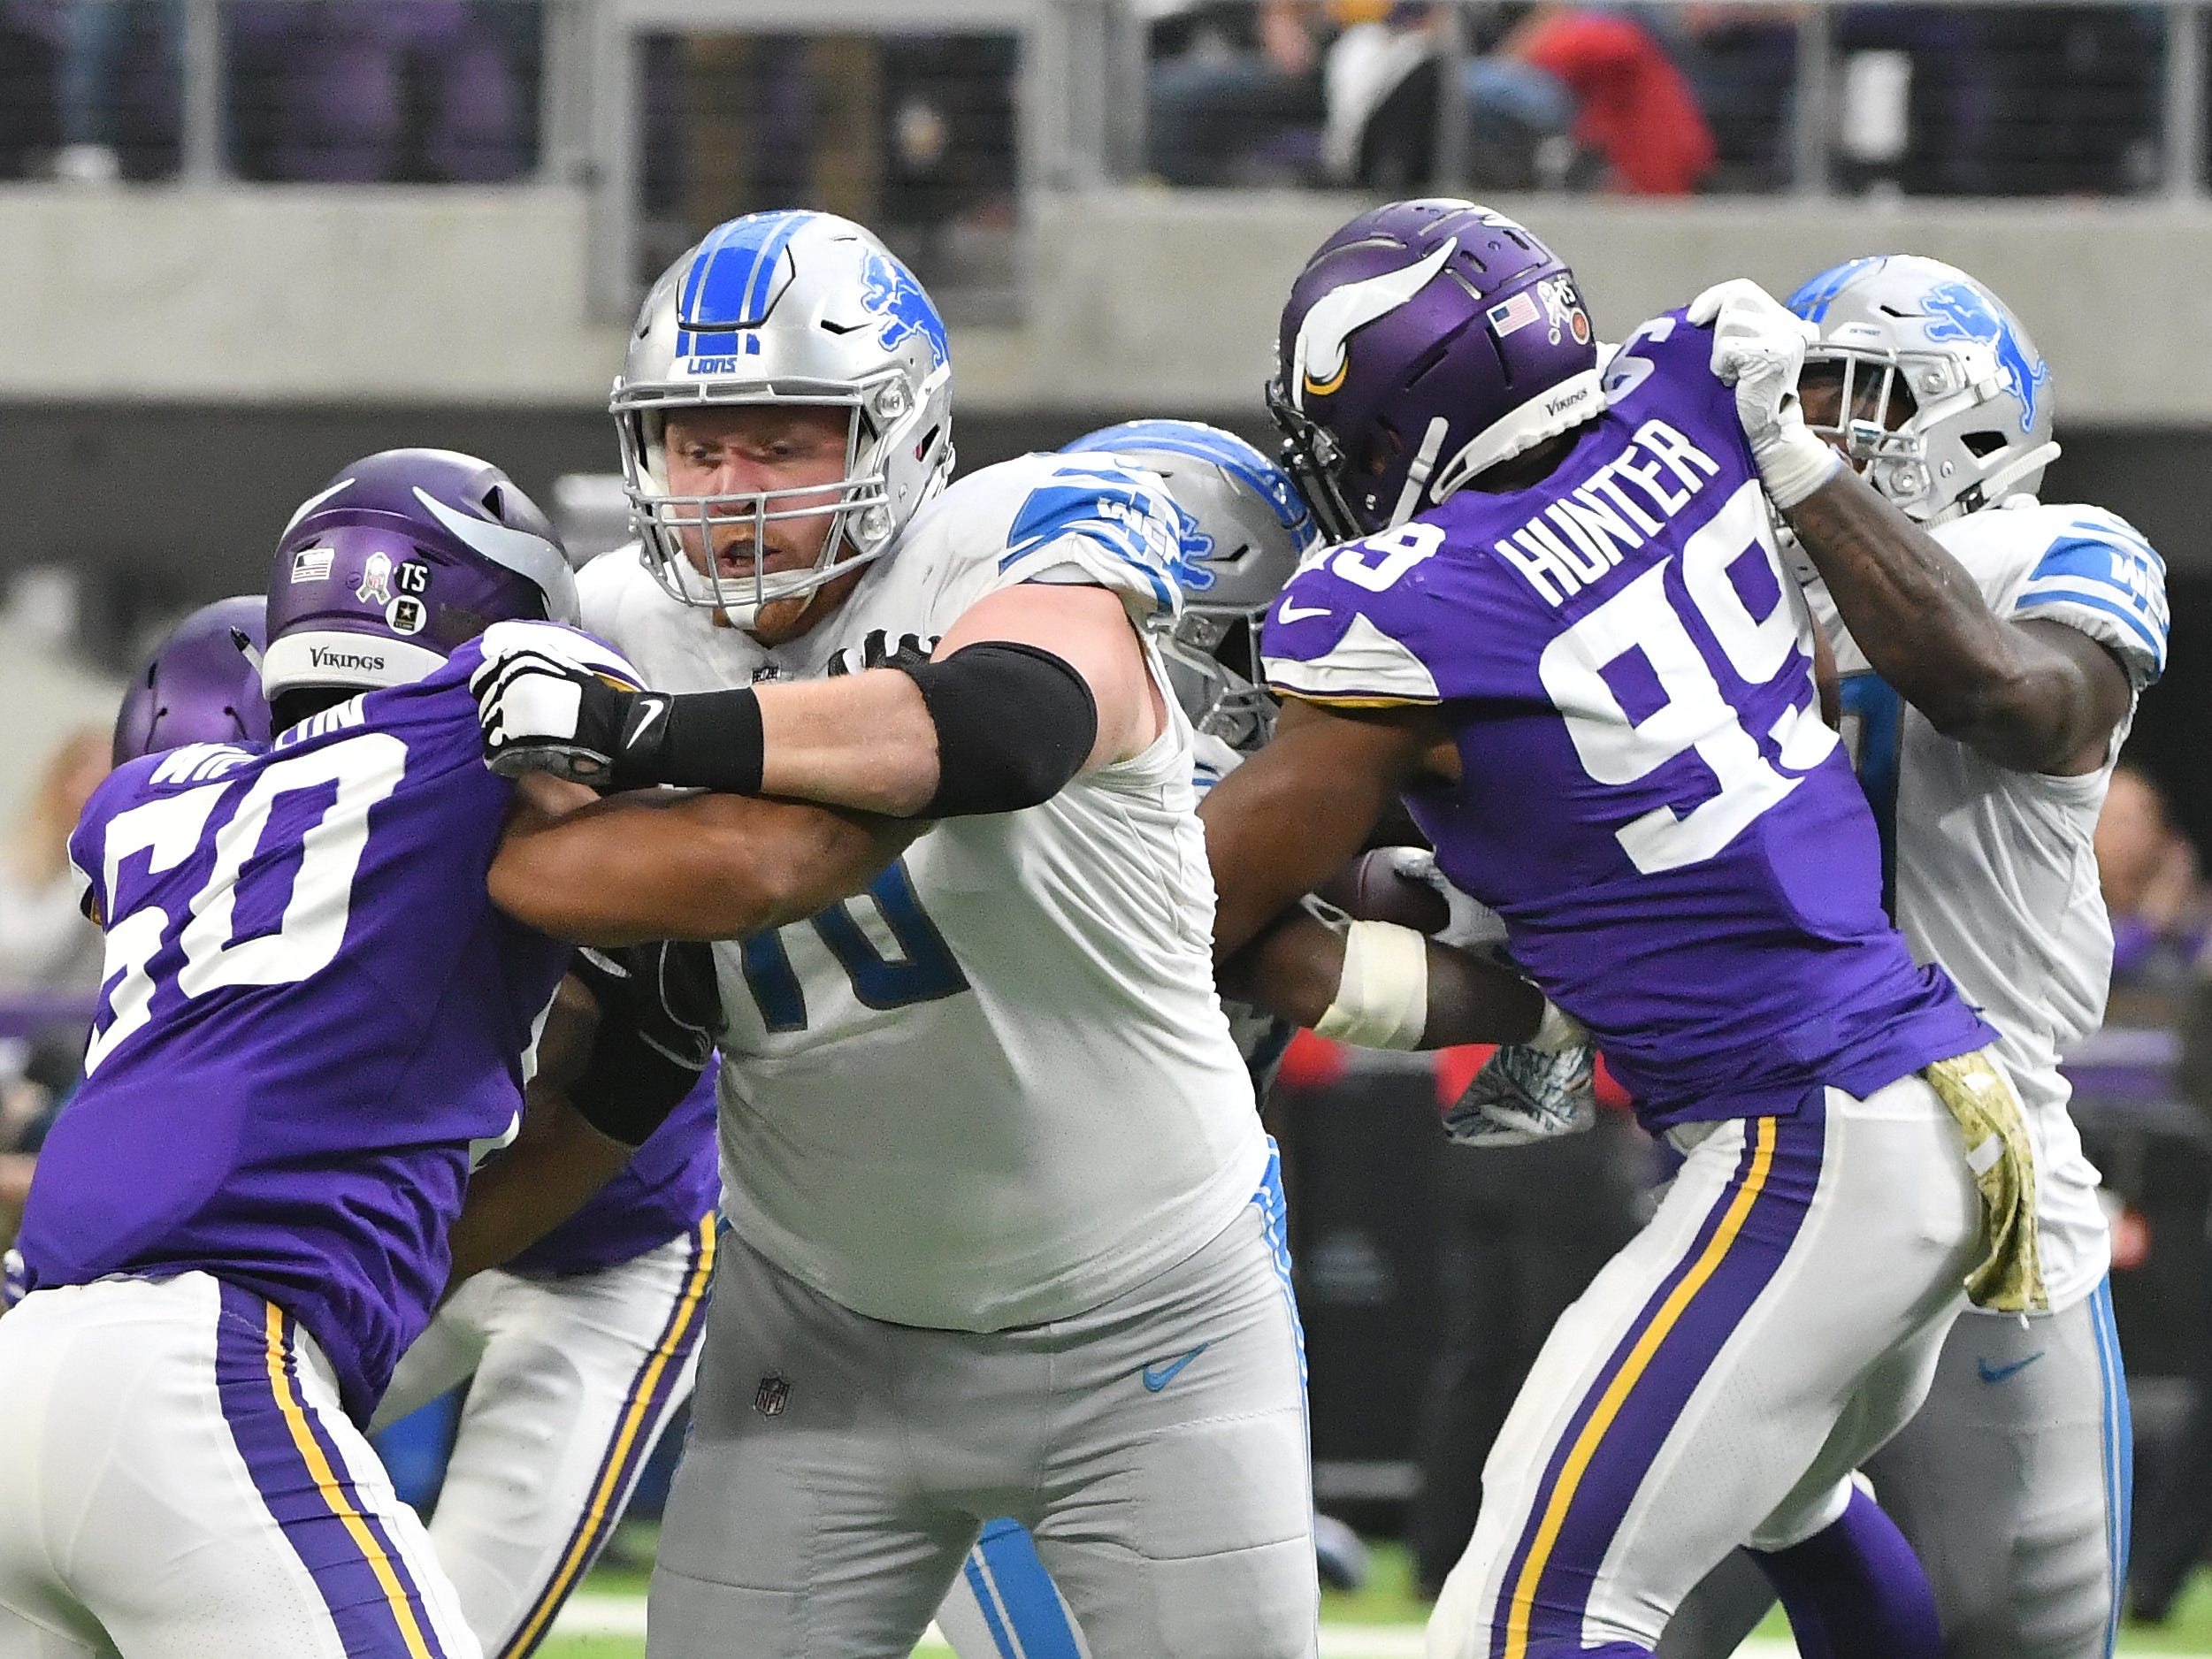 Lions' T.J. Lang defends against Vikings'  Eric Wilson in the second quarter.